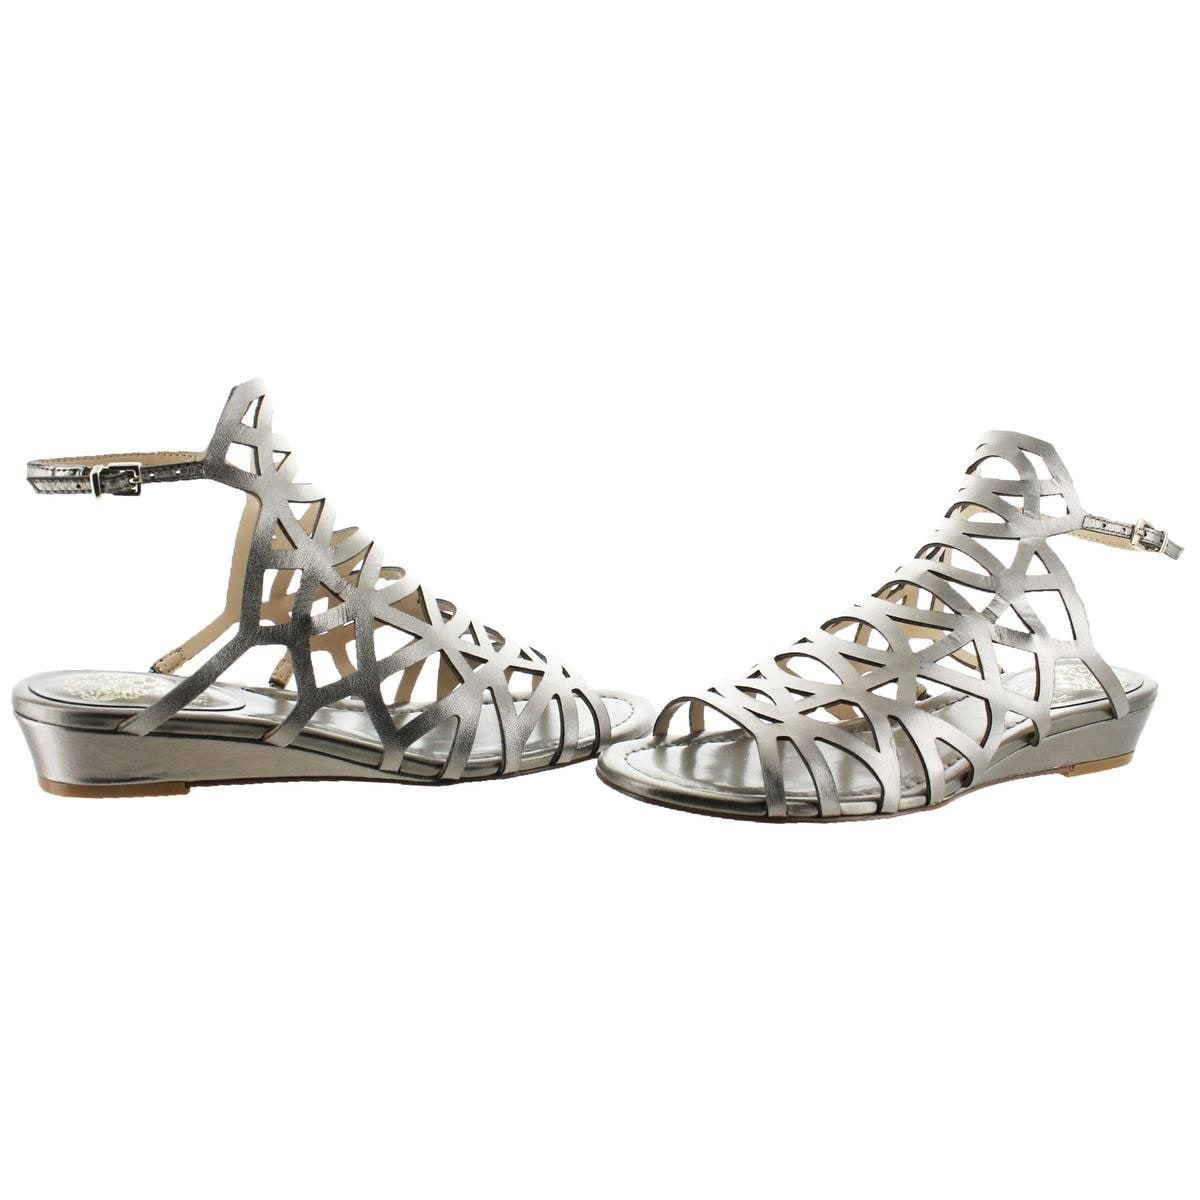 500dd3941 Shop Vince Camuto Womens Illana Wedge Sandals Strappy Slingback - Free  Shipping On Orders Over  45 - Overstock - 20996944